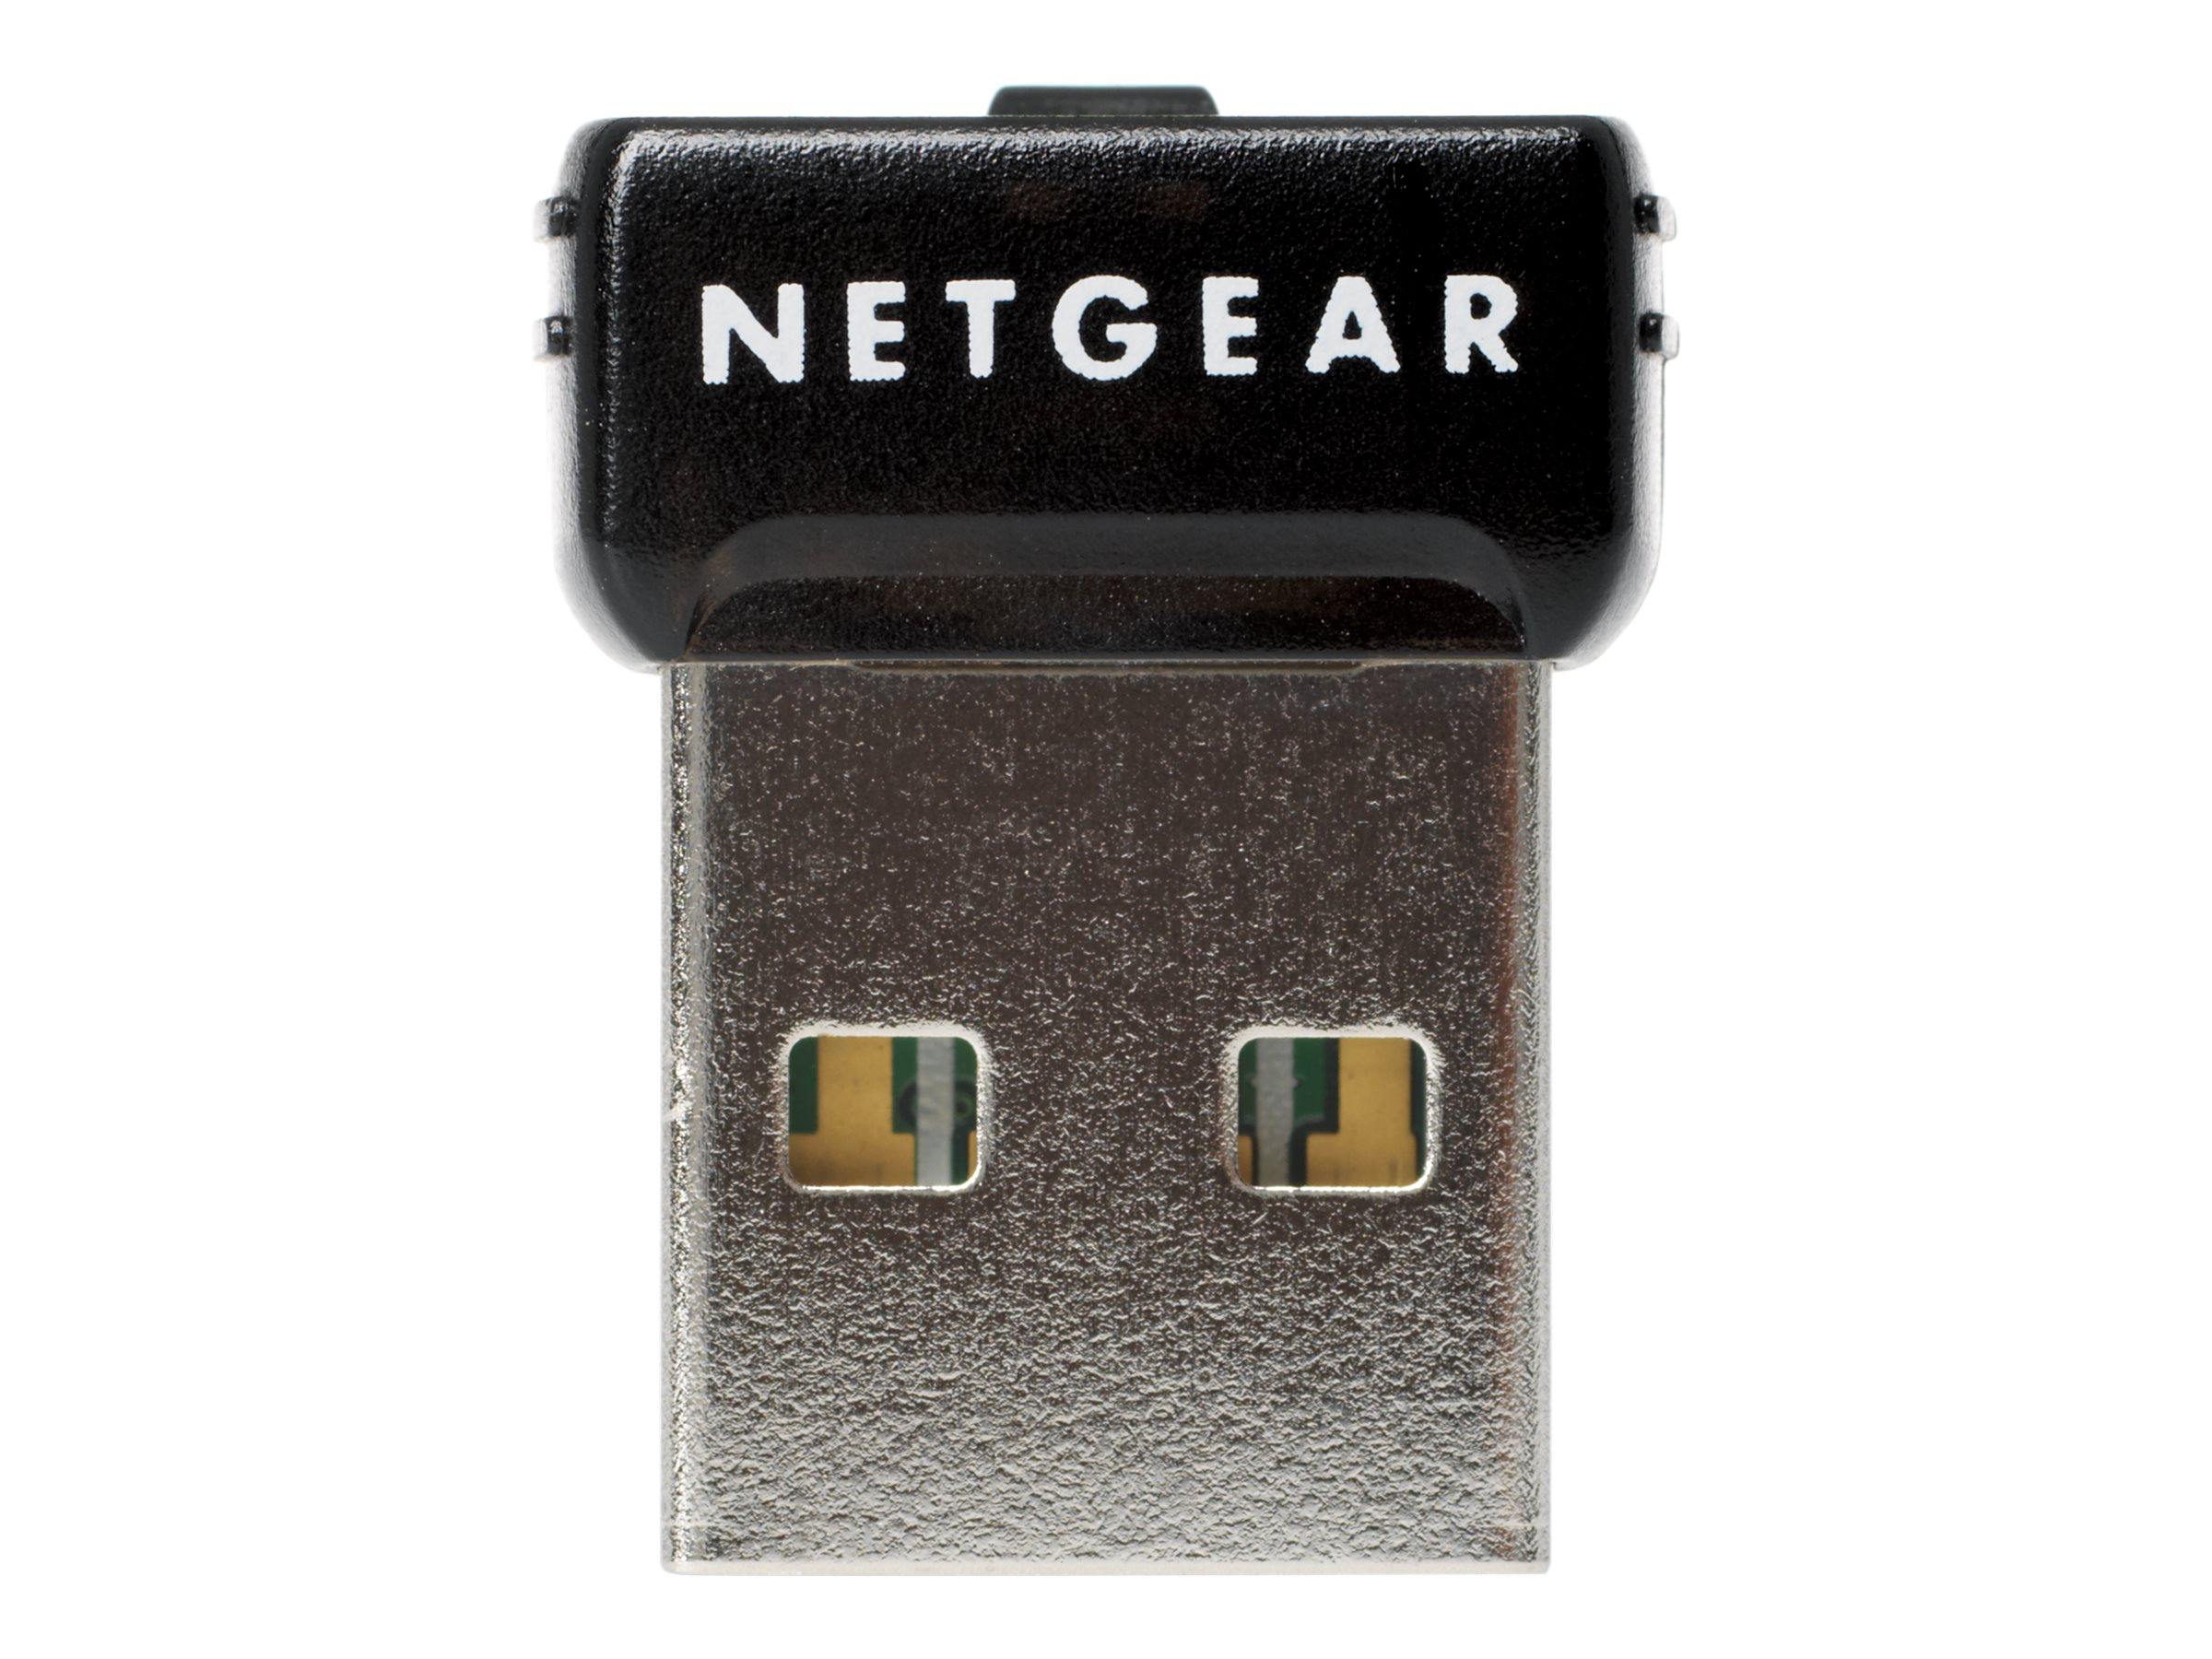 Netgear G54 N150 Wireless USB Micro Adapter, WNA1000M-100ENS